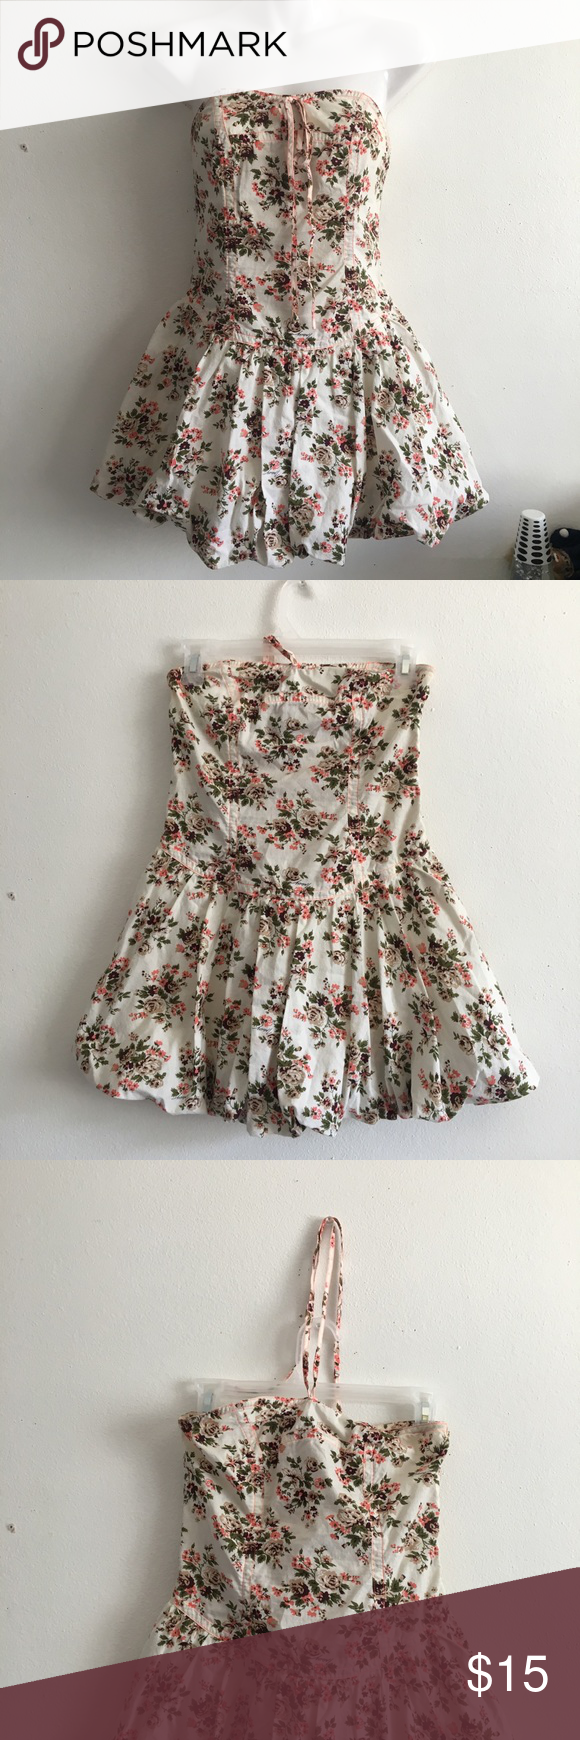 acd1ba1d8fbd2 Tracy Feith Bubble Mini Dress Strapless or Halter Super cute Tracy Feith  for Target. Super small size 1 dress. Floral print and bubble bottom.